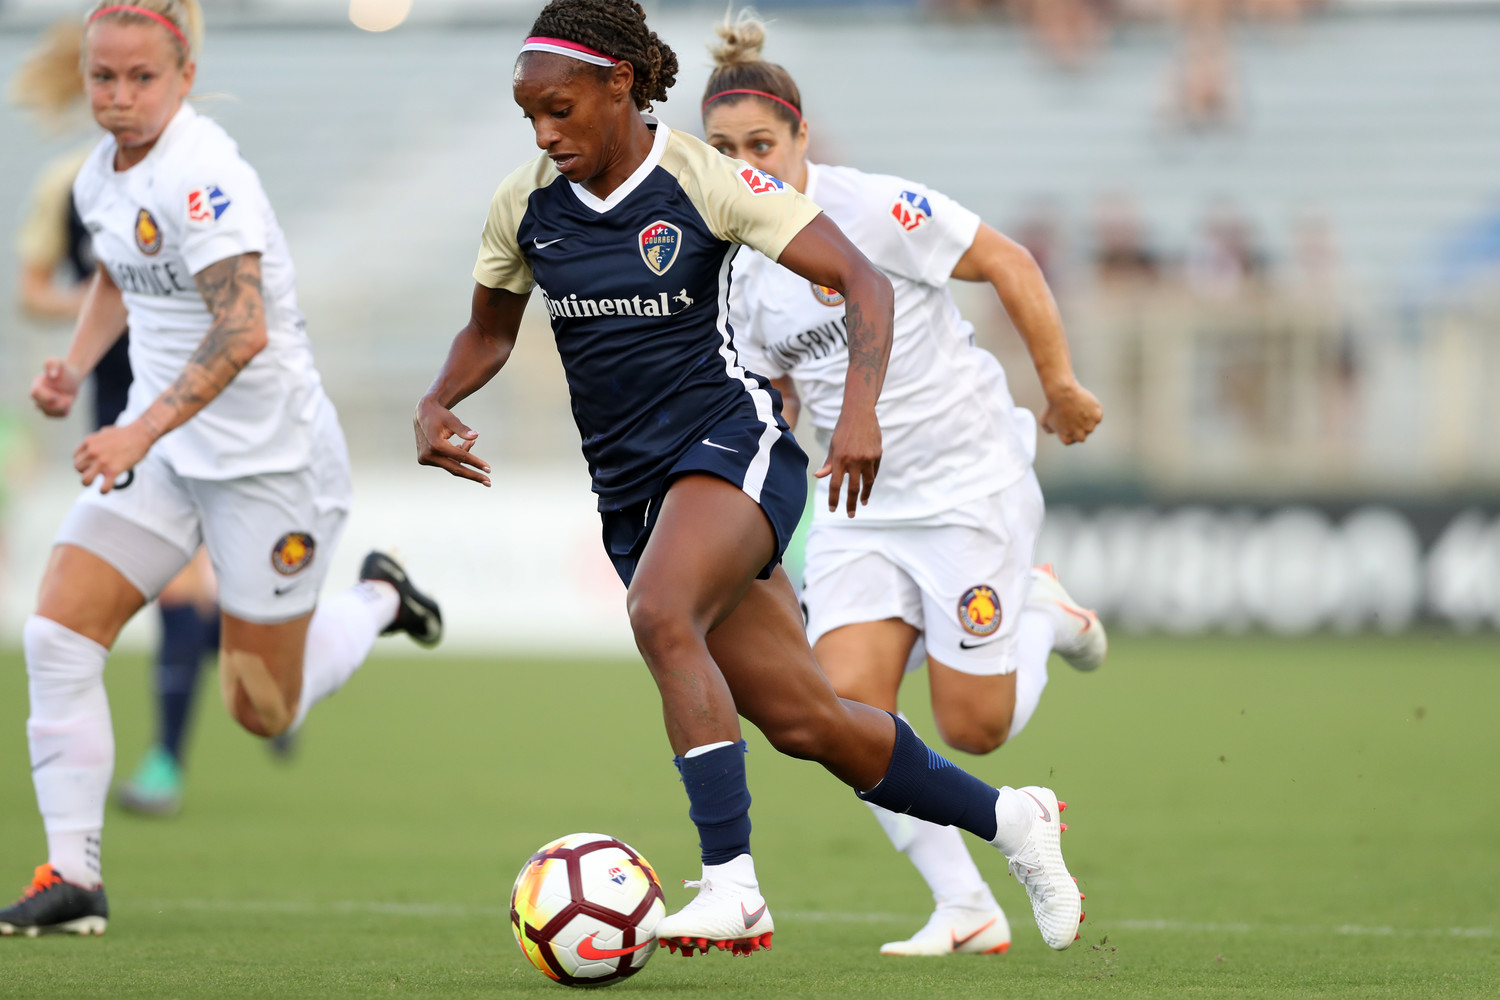 South Side High School graduate Crystal Dunn, pictured playing for the North Carolina Courage, was selected to play in her first FIFA Women's World Cup in France next month.